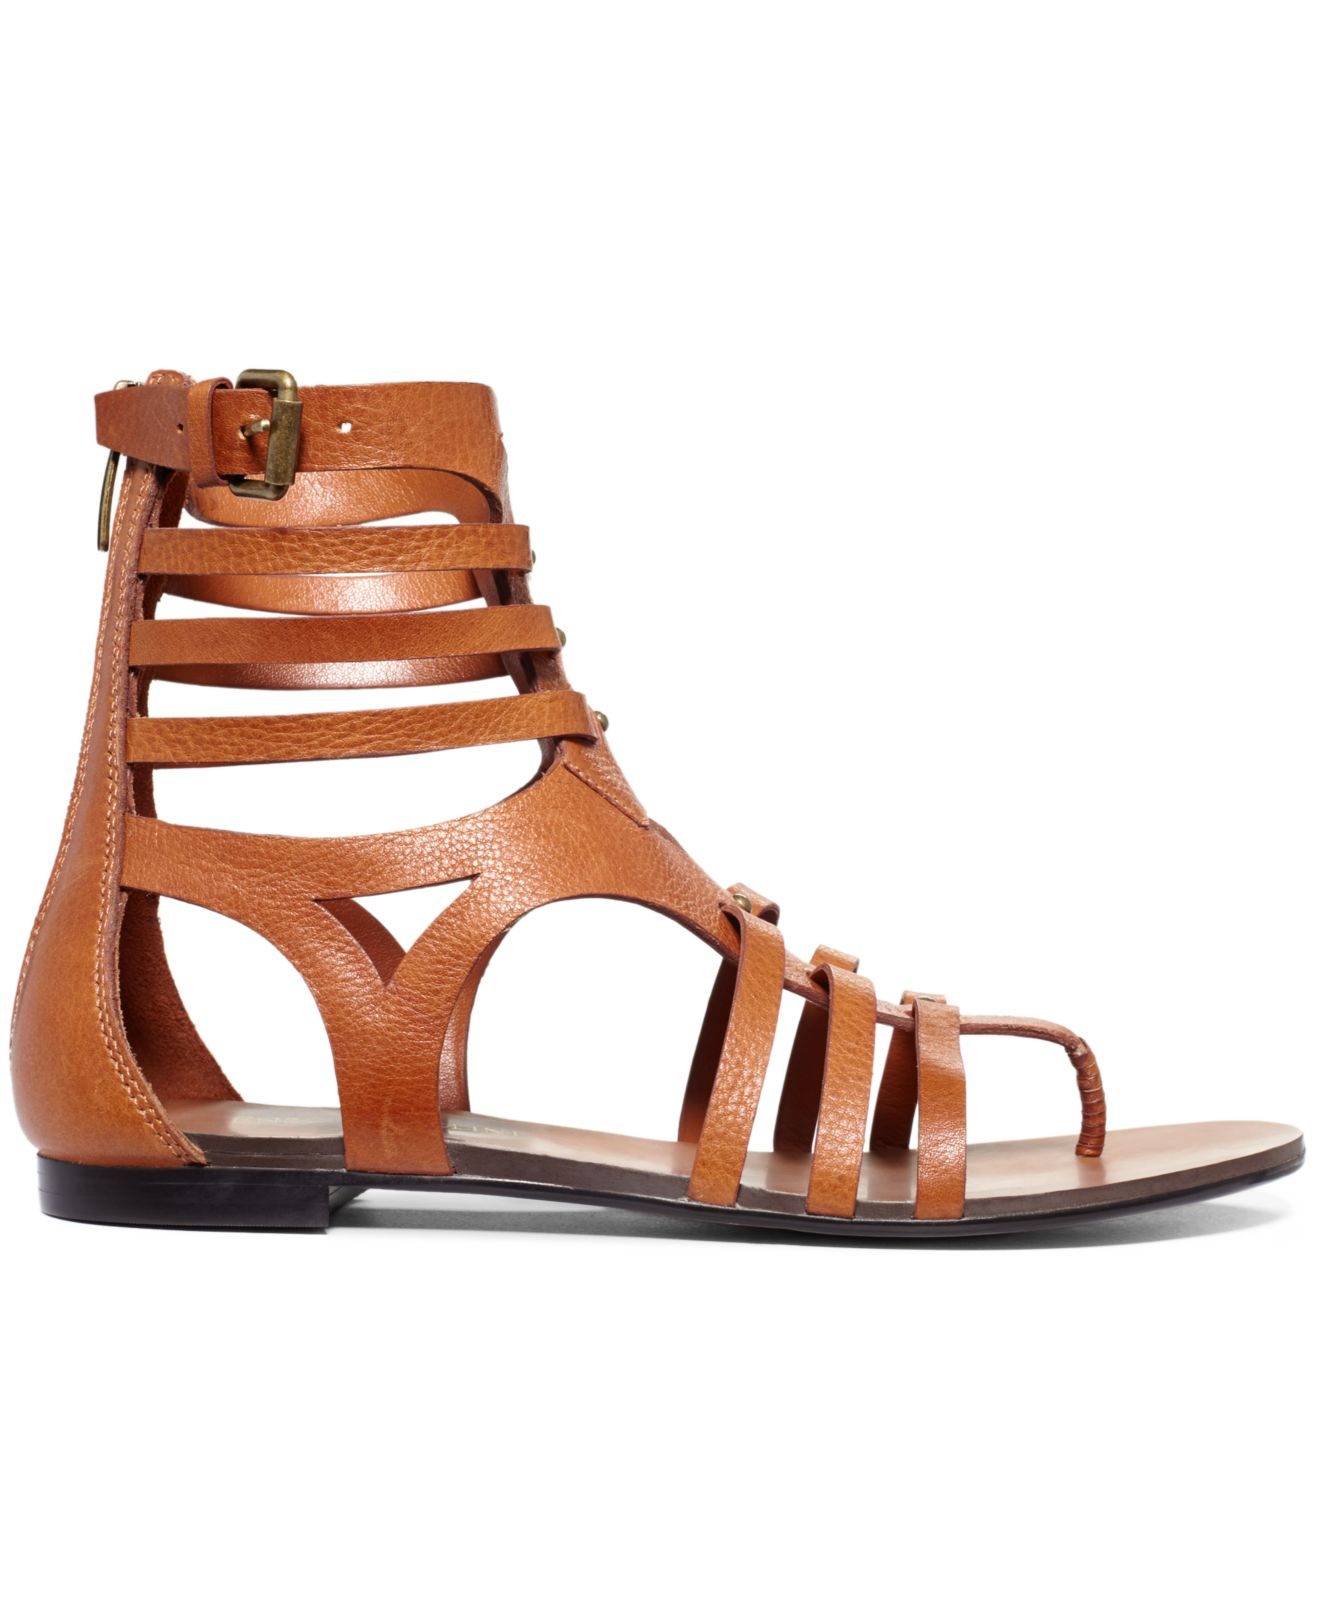 9b345f03259 Gallery. Previously sold at  Macy s · Women s Cage Sandals Women s Gladiator  Sandals Women s Thong ...